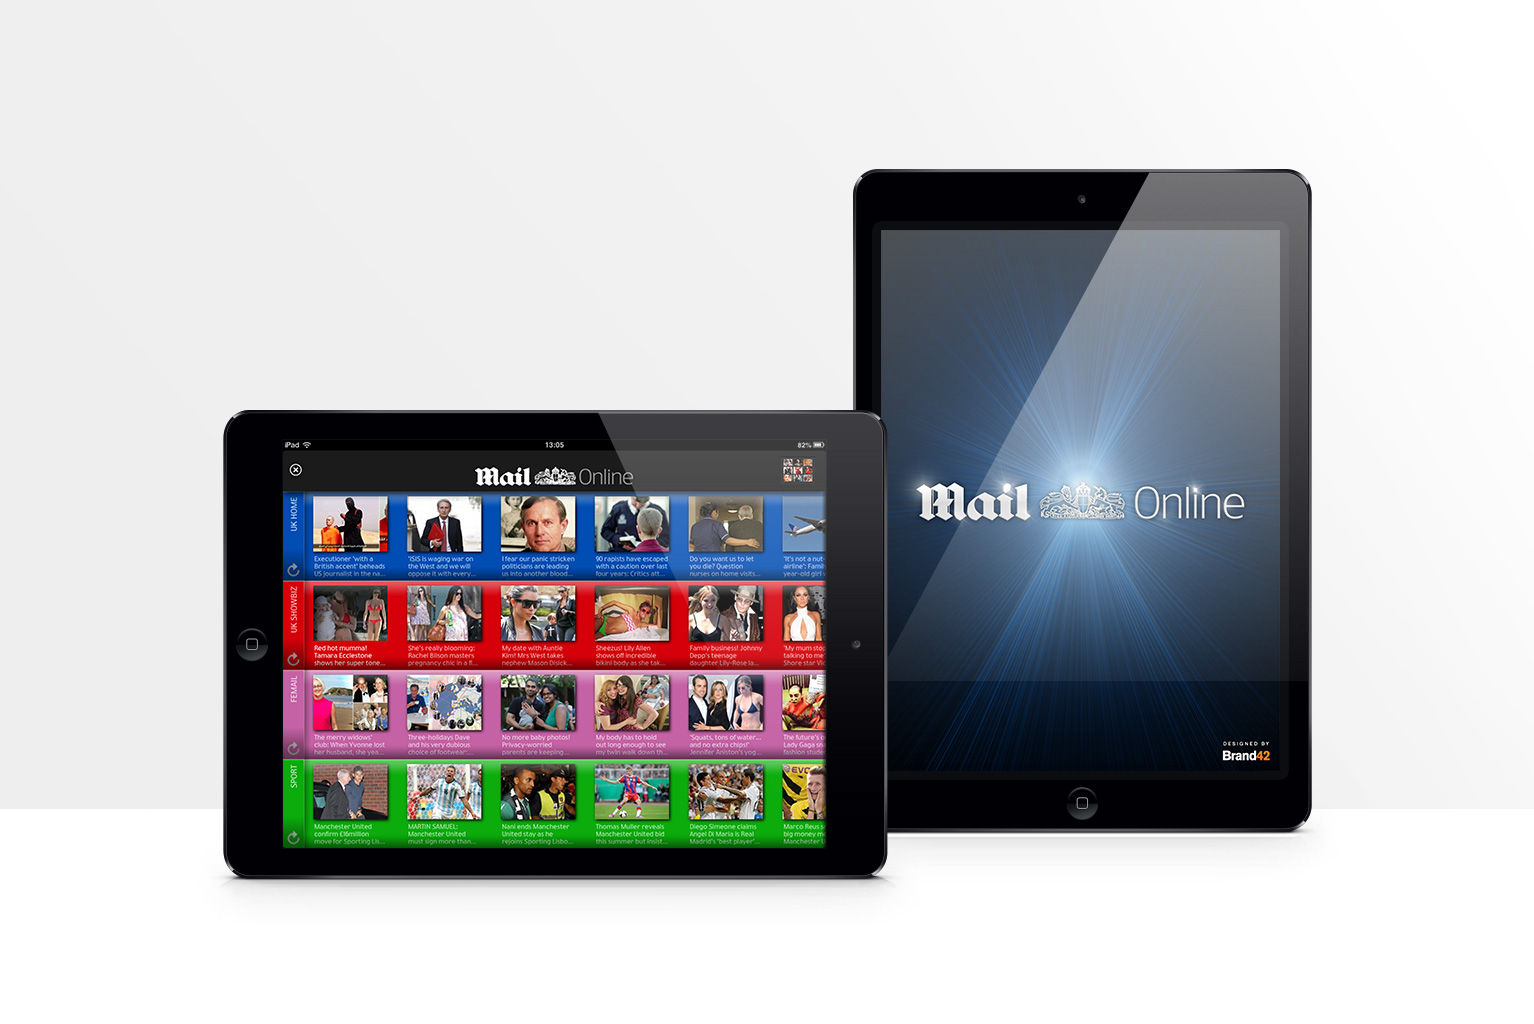 MailOnline iPad App designed by Brand42